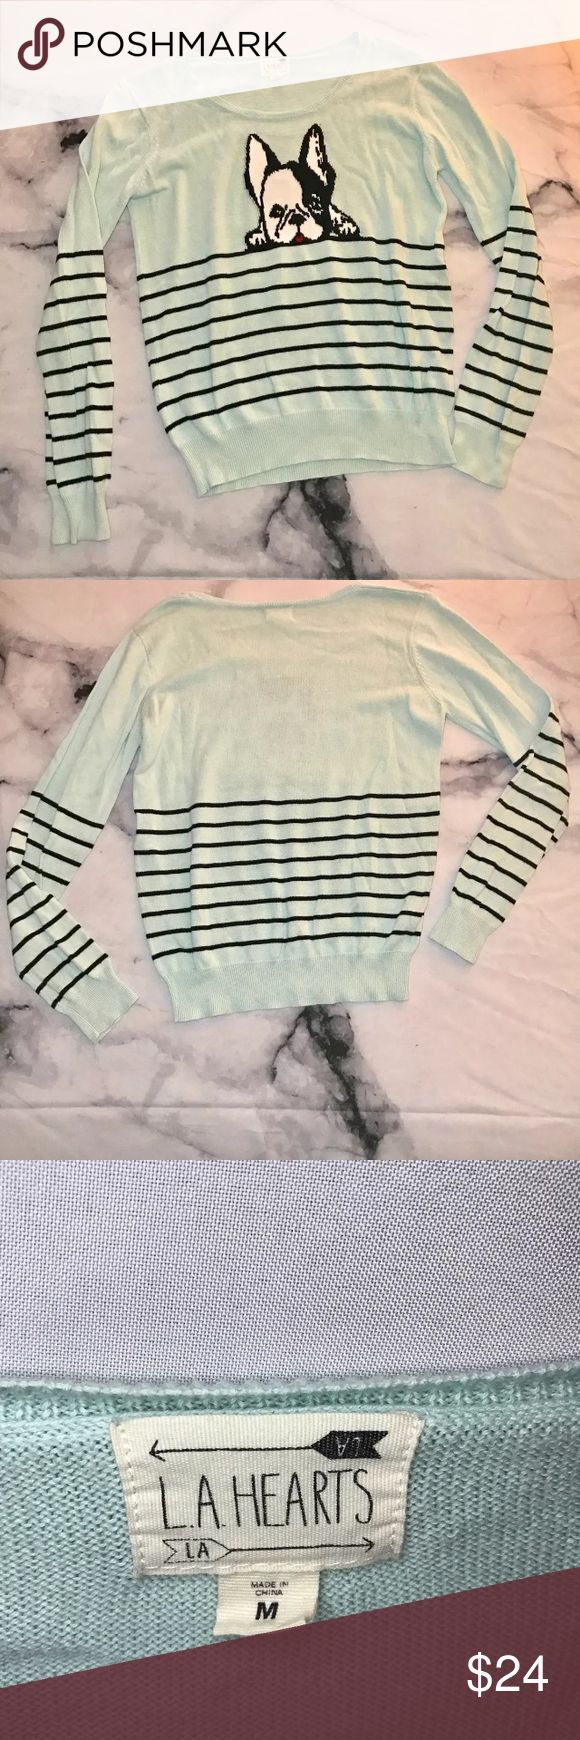 LA Hearts French Bulldog Mint Green Sweater M Gently Worn. Good used condition! True to size! 🖤THANK YOU for supporting the dream of business ownership of 2 BFFs! 🖤DON'T PASS THIS UP! Make us an offer! 🖤We ship daily M-Sat, so youll get it on time! 🖤no price discussion in comments please🖤 use offer button 🖤reasonable offers accepted 🖤low offers countered🖤offers below 50% of asking price are auto declined🖤 LA Hearts Sweaters